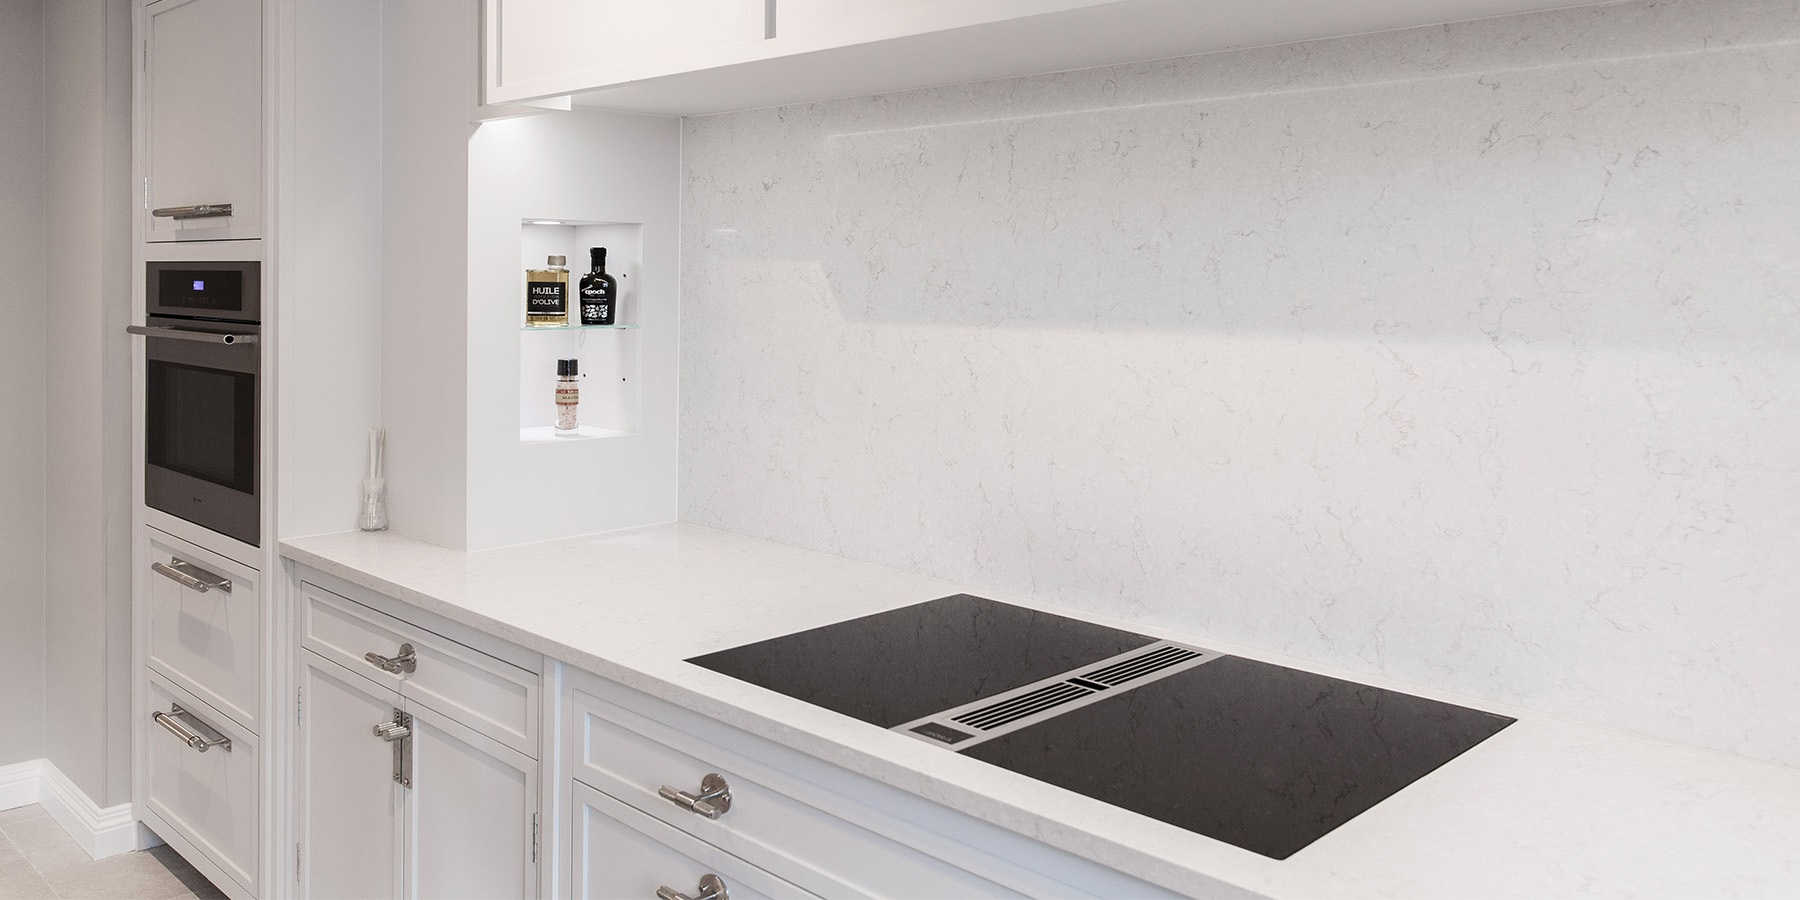 Burlanes Interiors - BORA: The End Of The Extractor Hood